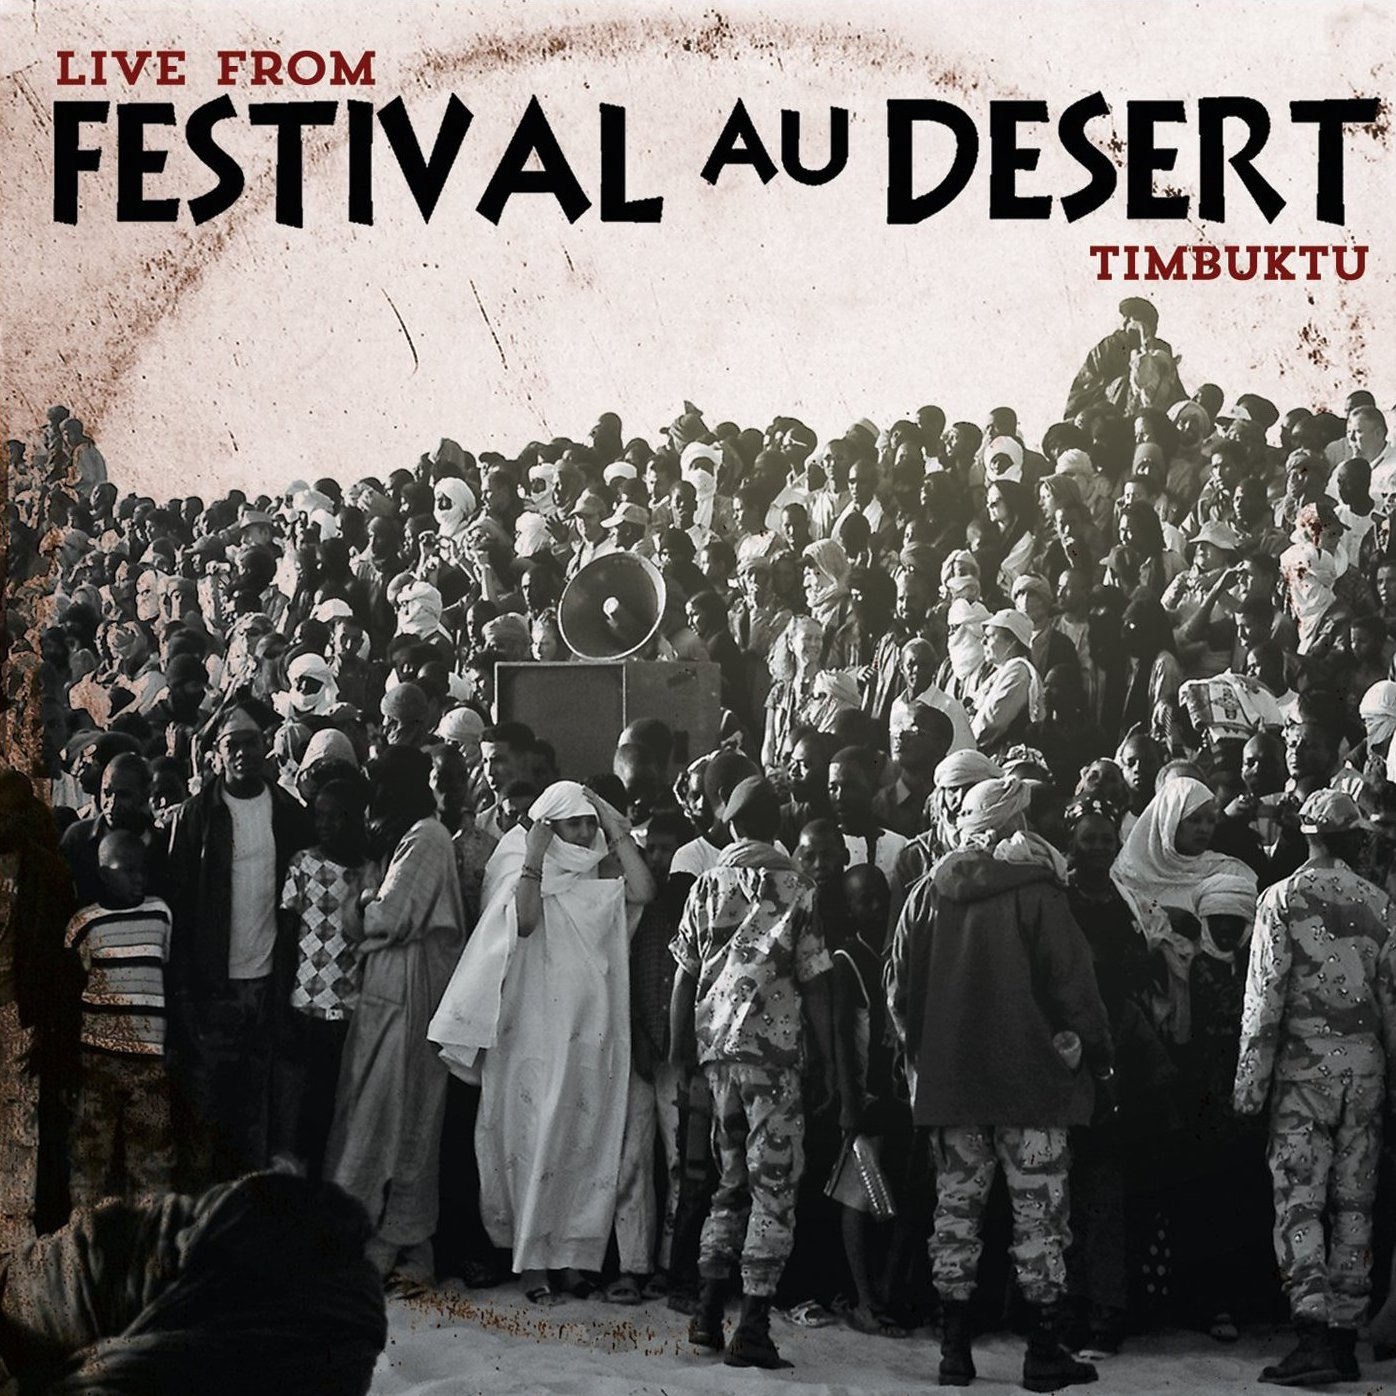 Live From Festival Au Desert, Timbuktu by Clermont Music